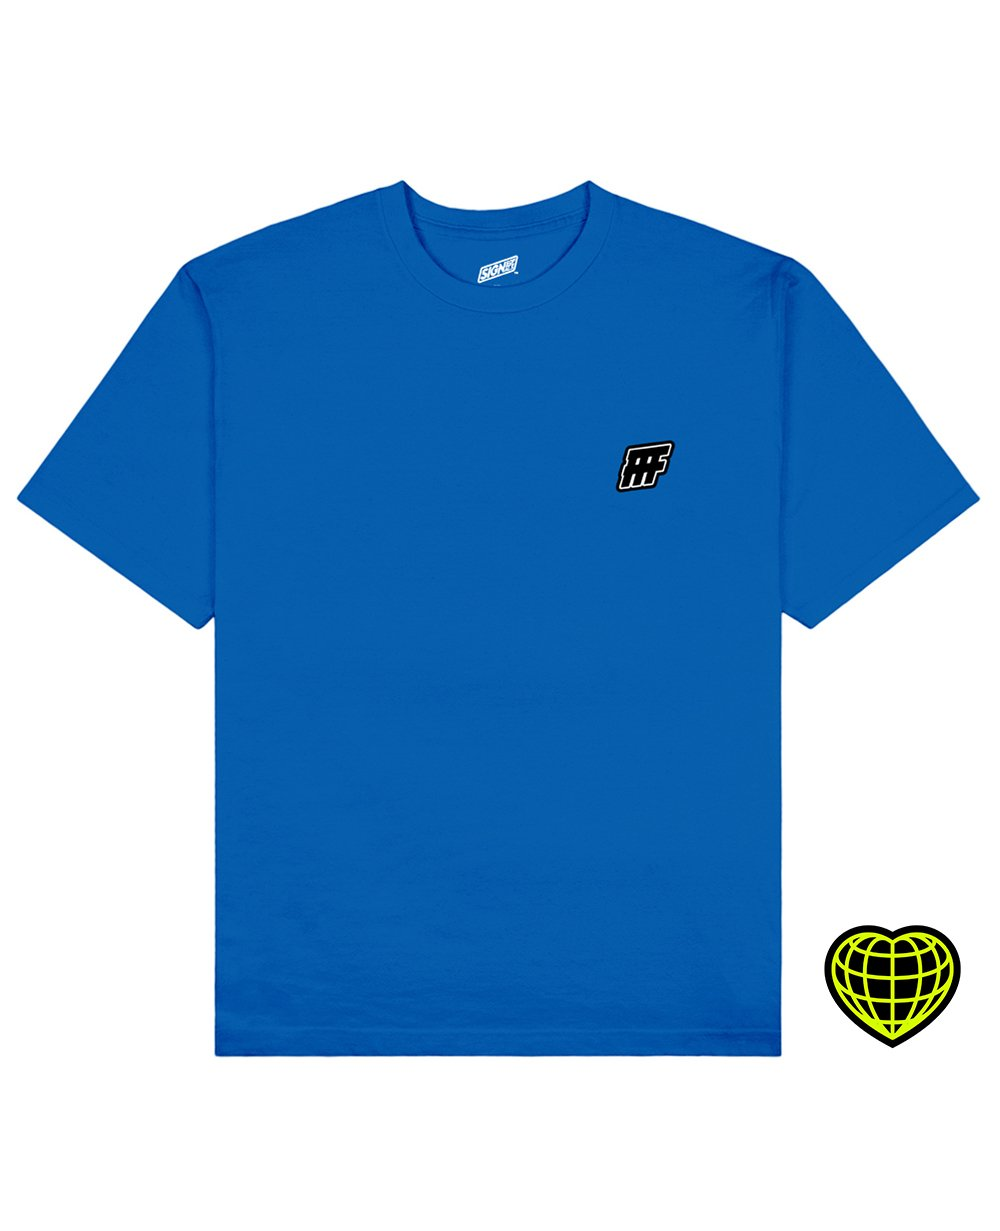 FFF Print T-shirt in Blue - T-Shirts - Signs of Signals - BRANMA